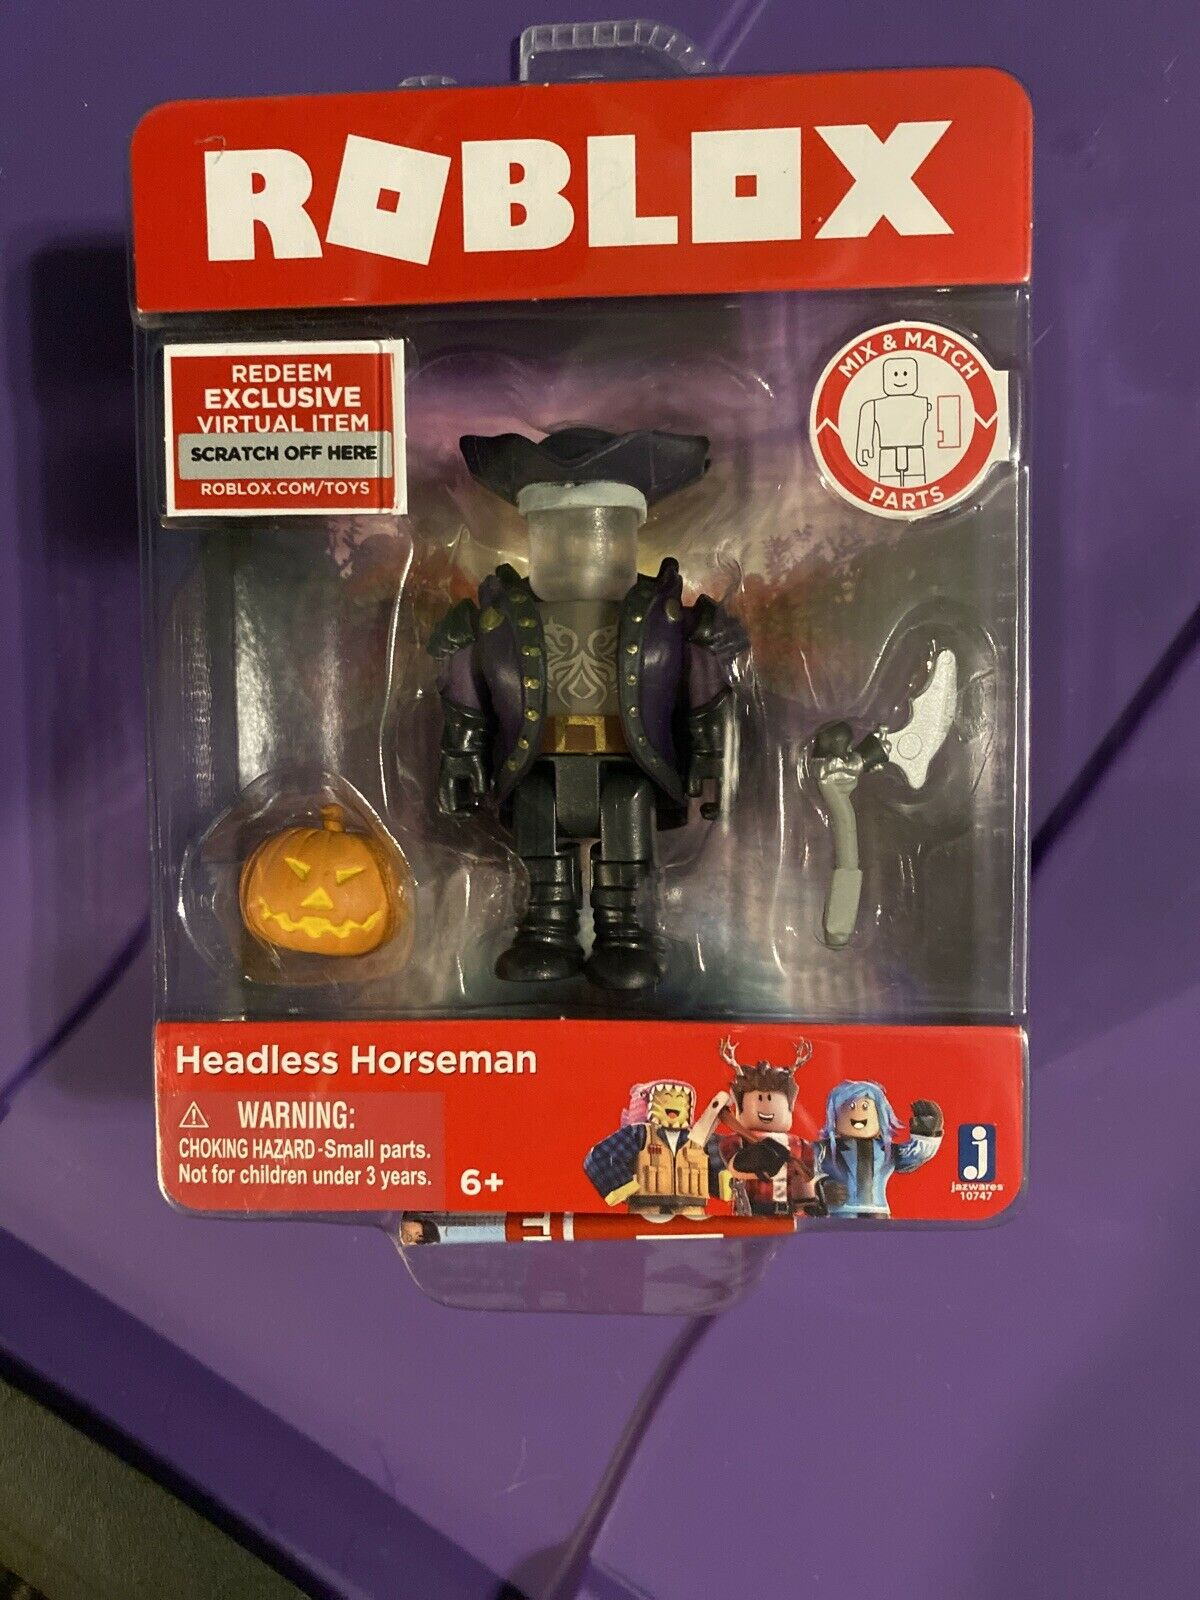 Roblox Id Code For Headless Roblox Headless Horseman Figure With Virtual Item Game Code For Sale Online Ebay